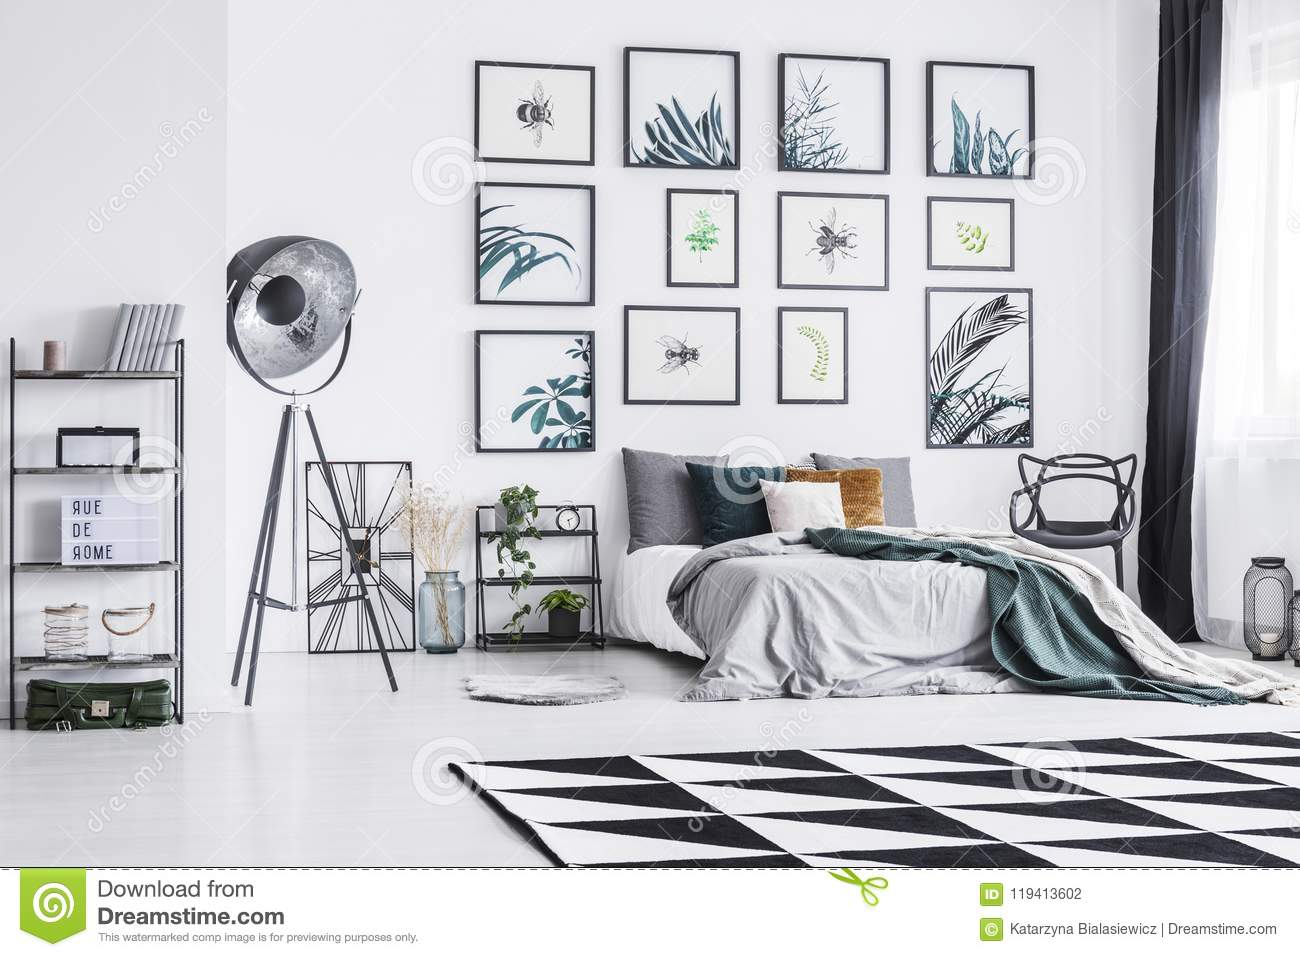 Black And White Carpet Placed On The Floor In Bright Bedroom Interior With King Size Bed Black Studio Lamp And Posters Hanging On Stock Photo Image Of Bedding Hanging 119413602